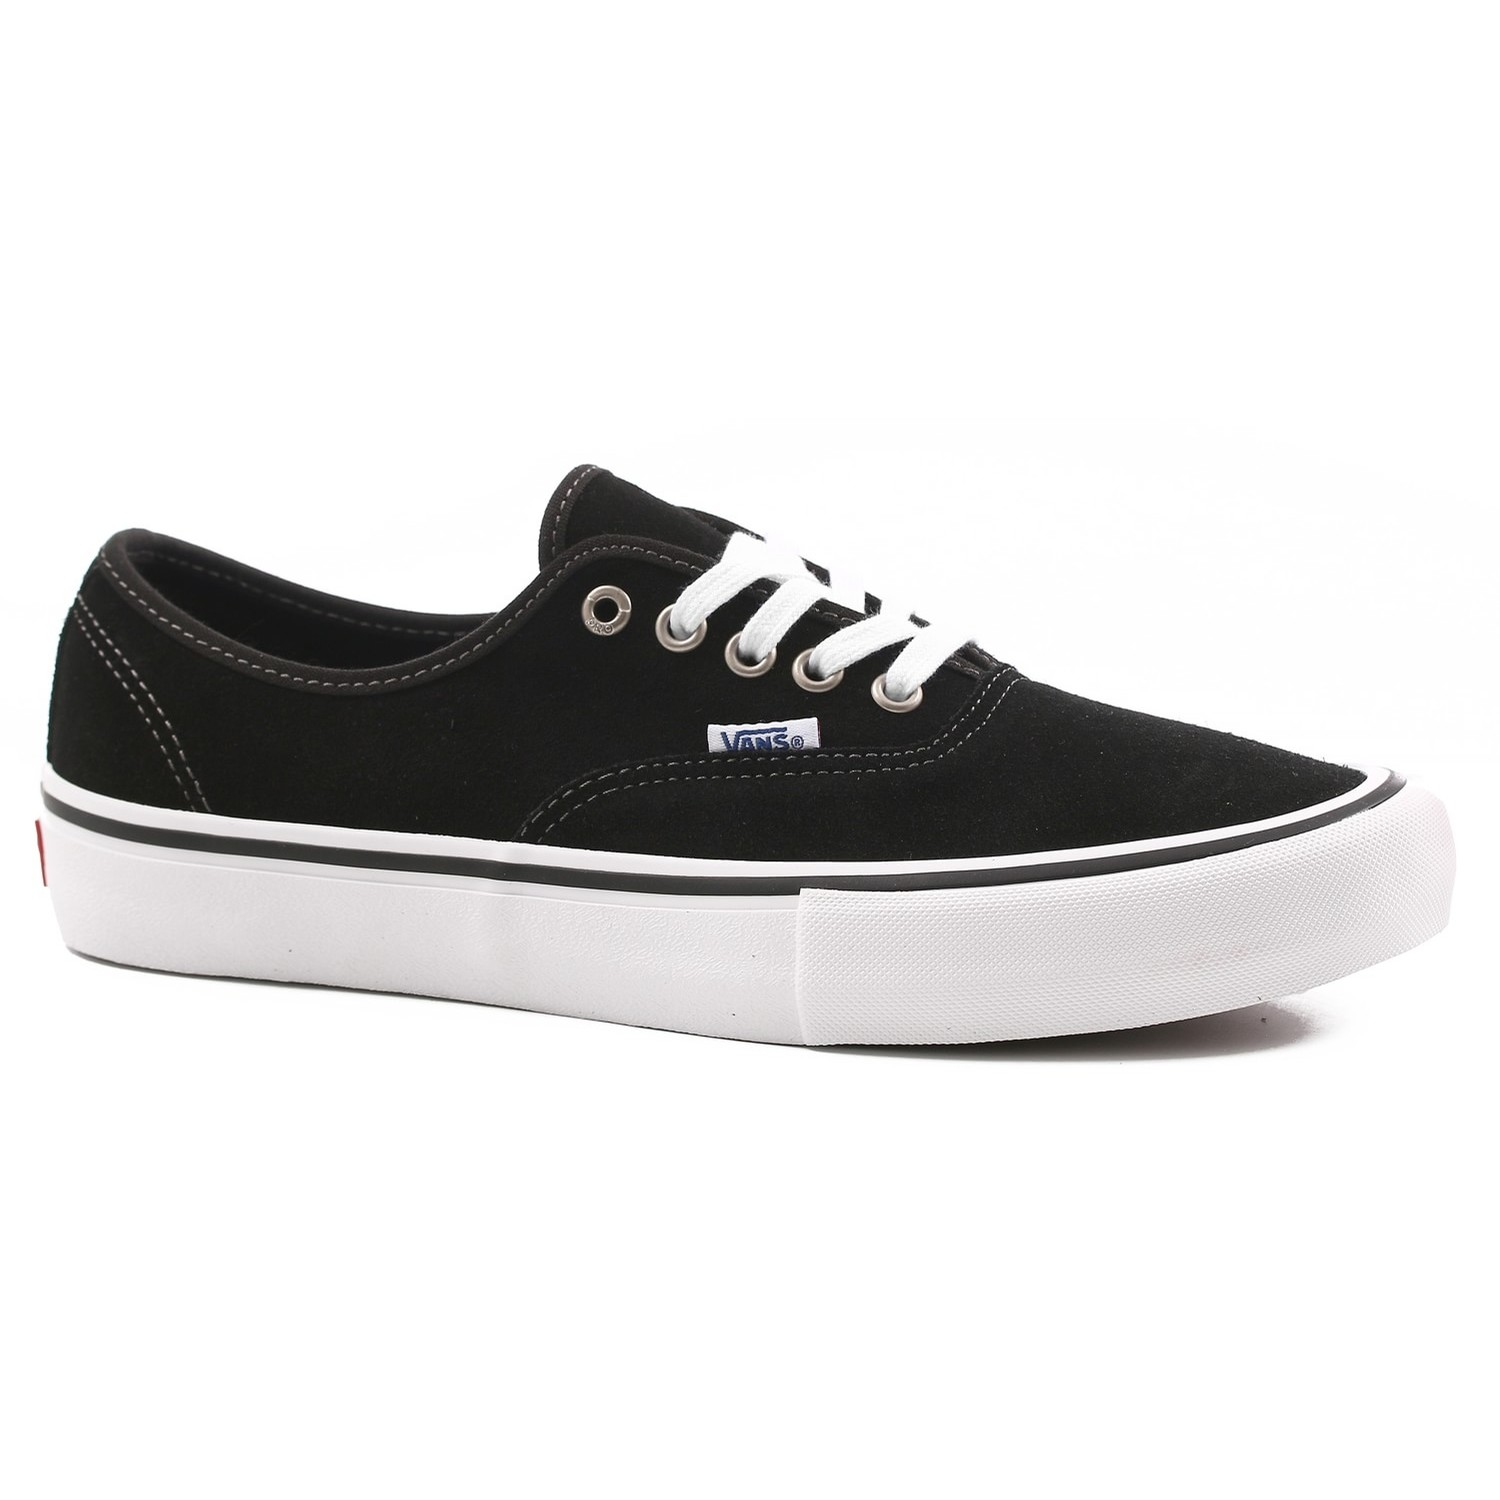 Authentic Pro (Suede) Black